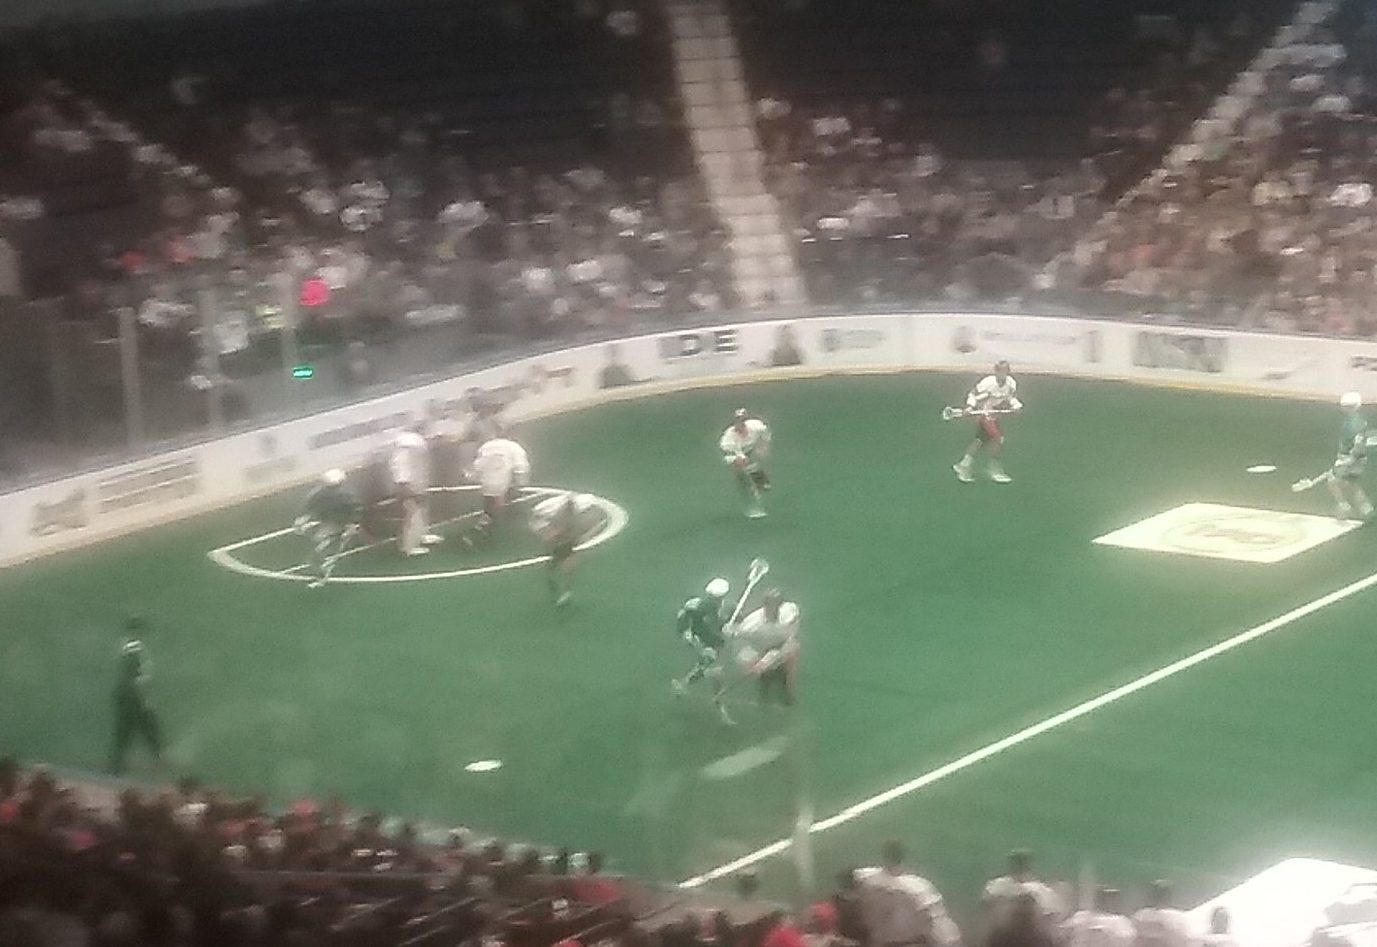 The Bandits and Knighthawks needed more than 60 minutes to decide their game Saturday.